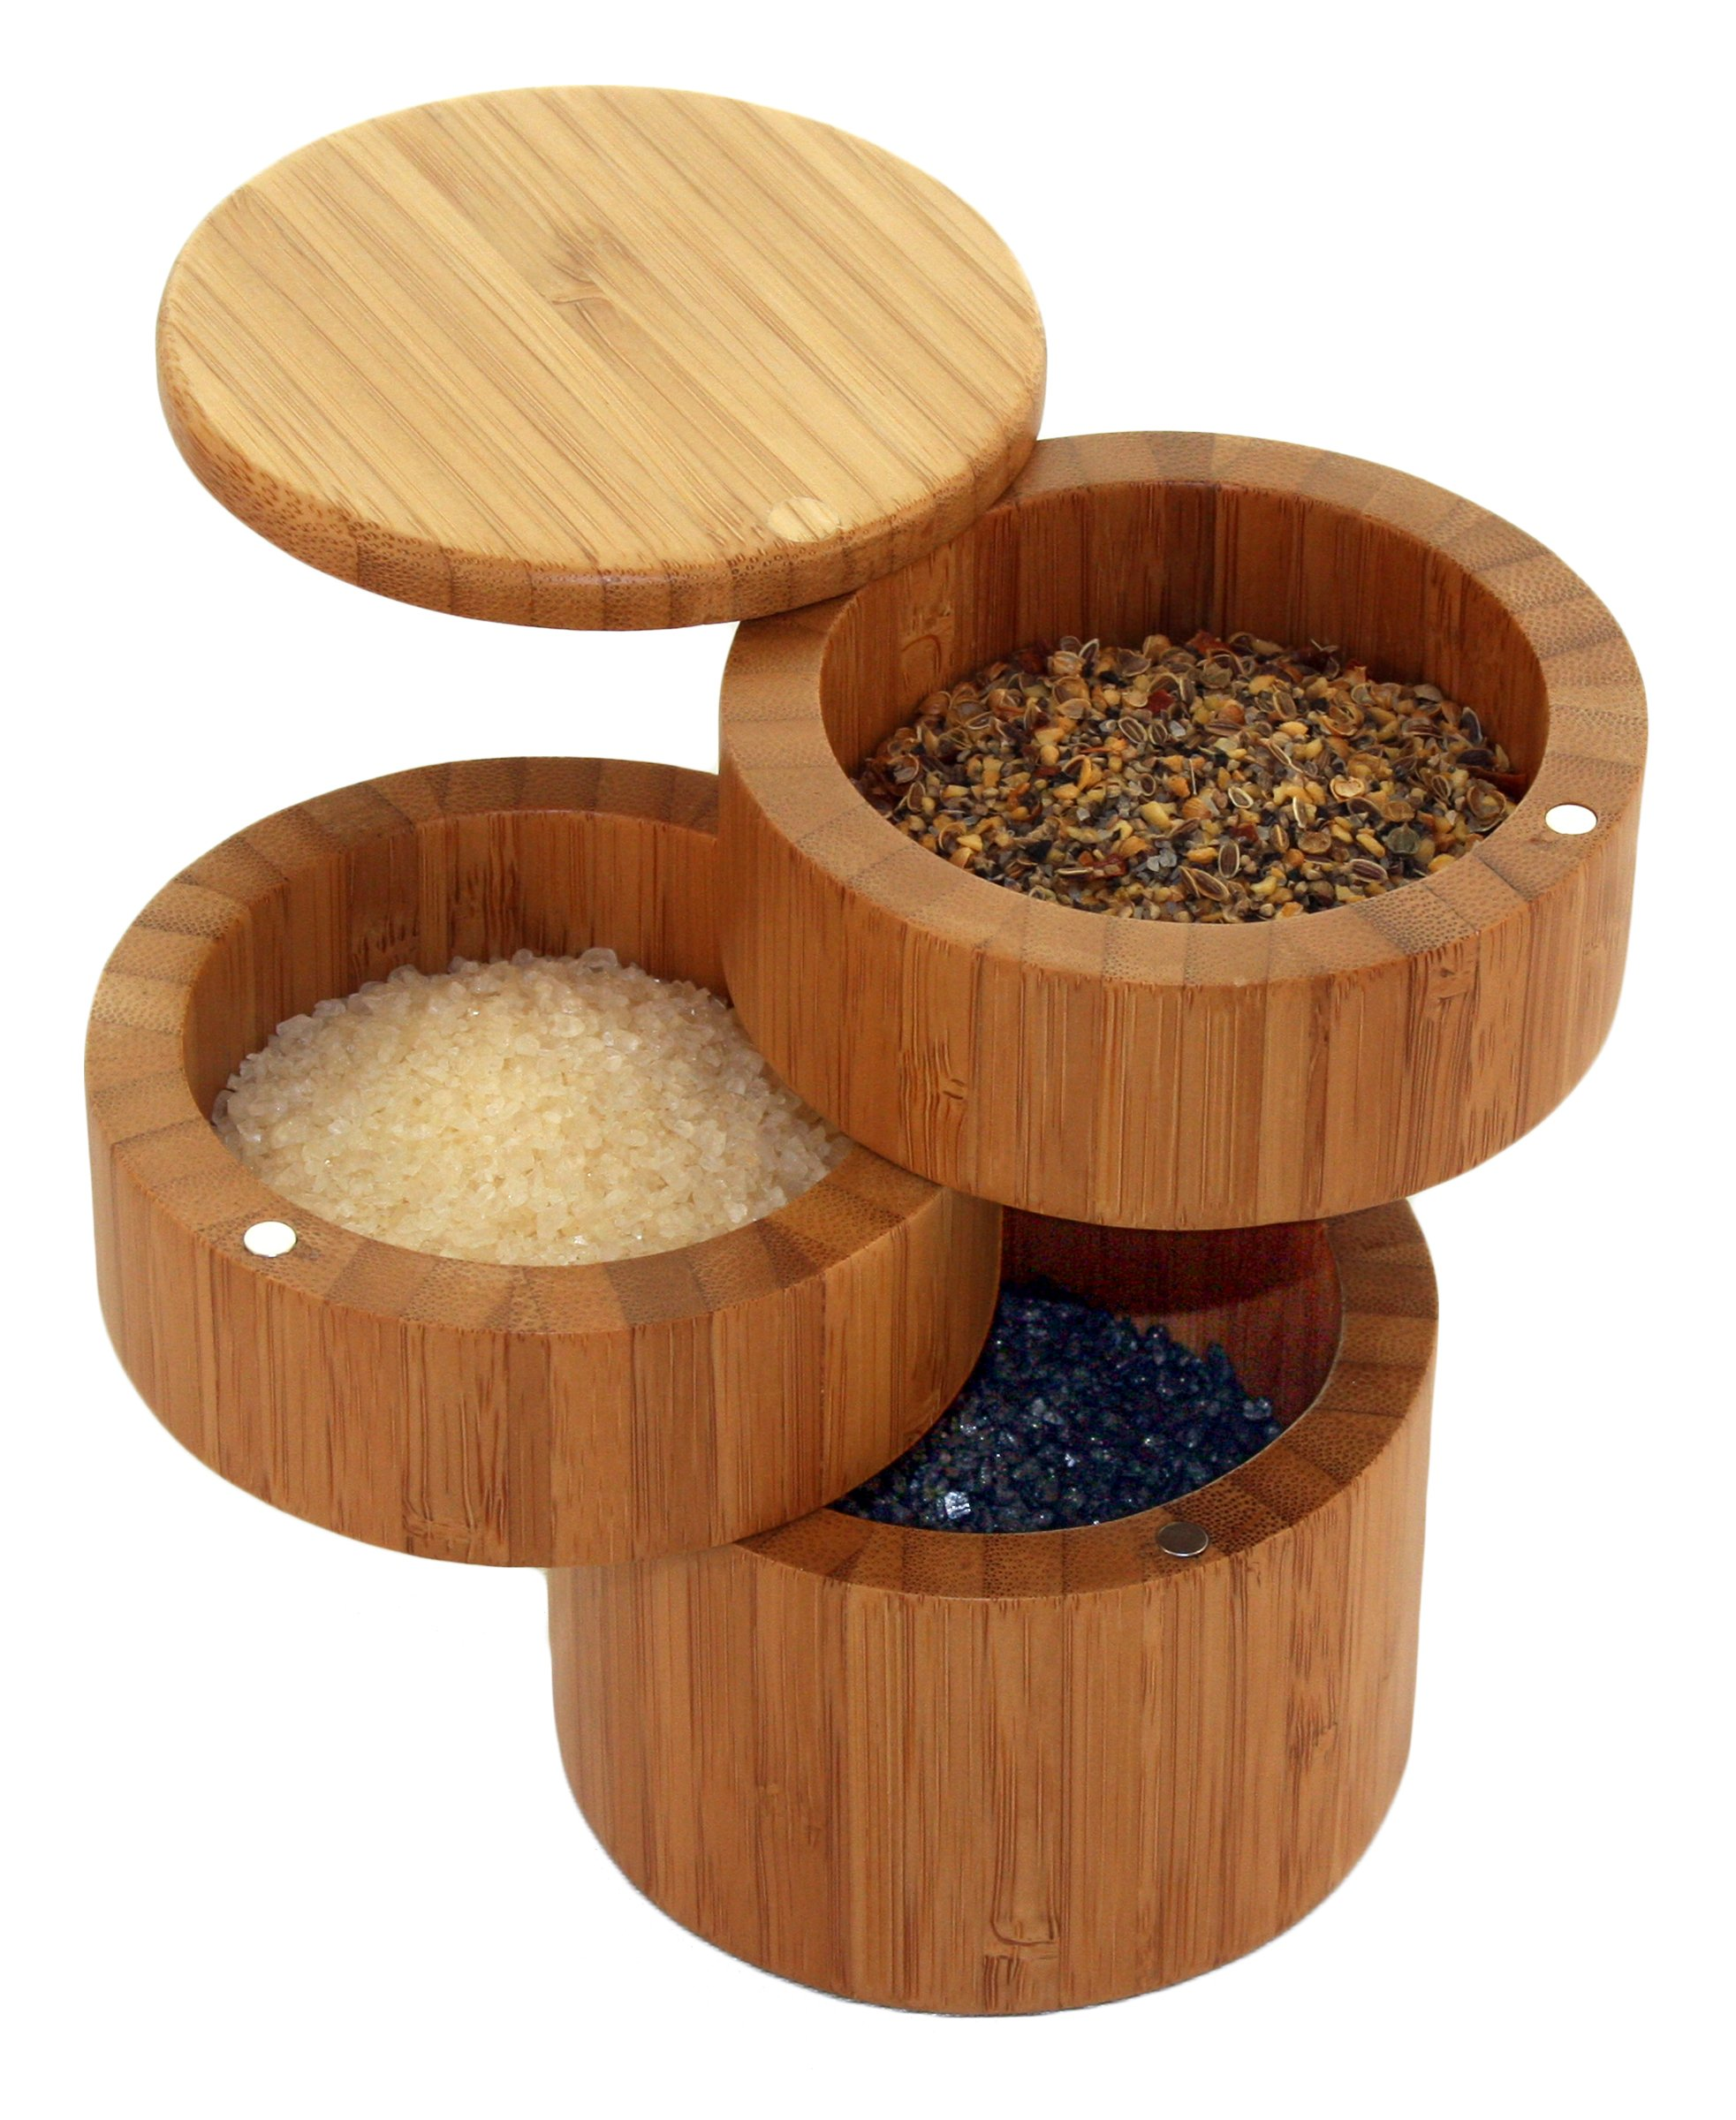 Totally Bamboo Triple Salt Box, 100% Bamboo Container with Magnetic Lid For Secure Strong Storage, This Wooden Box has Three Compartments for Salt, Spices, Herbs, Seasoning & MORE! Designed in USA